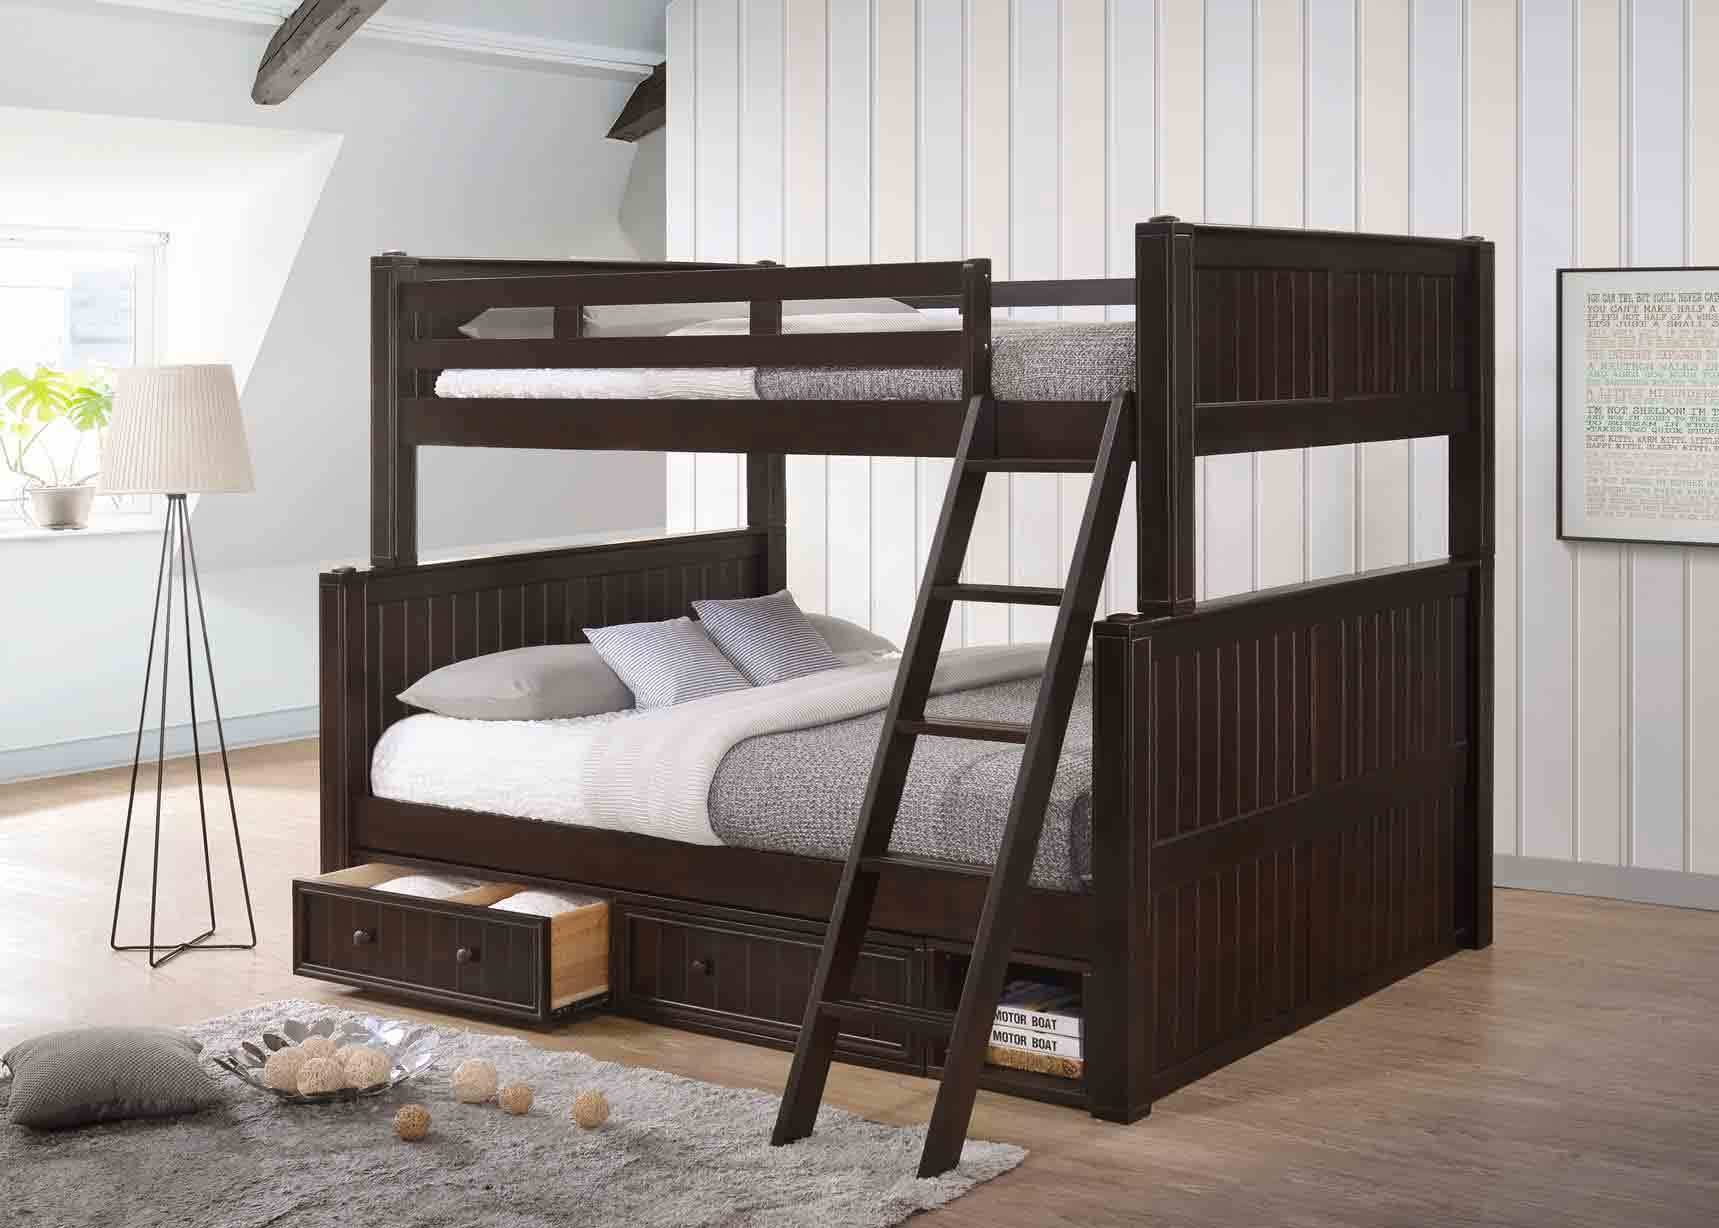 Picture of: Full Queen Bunk Bed J A Y Furniture Co